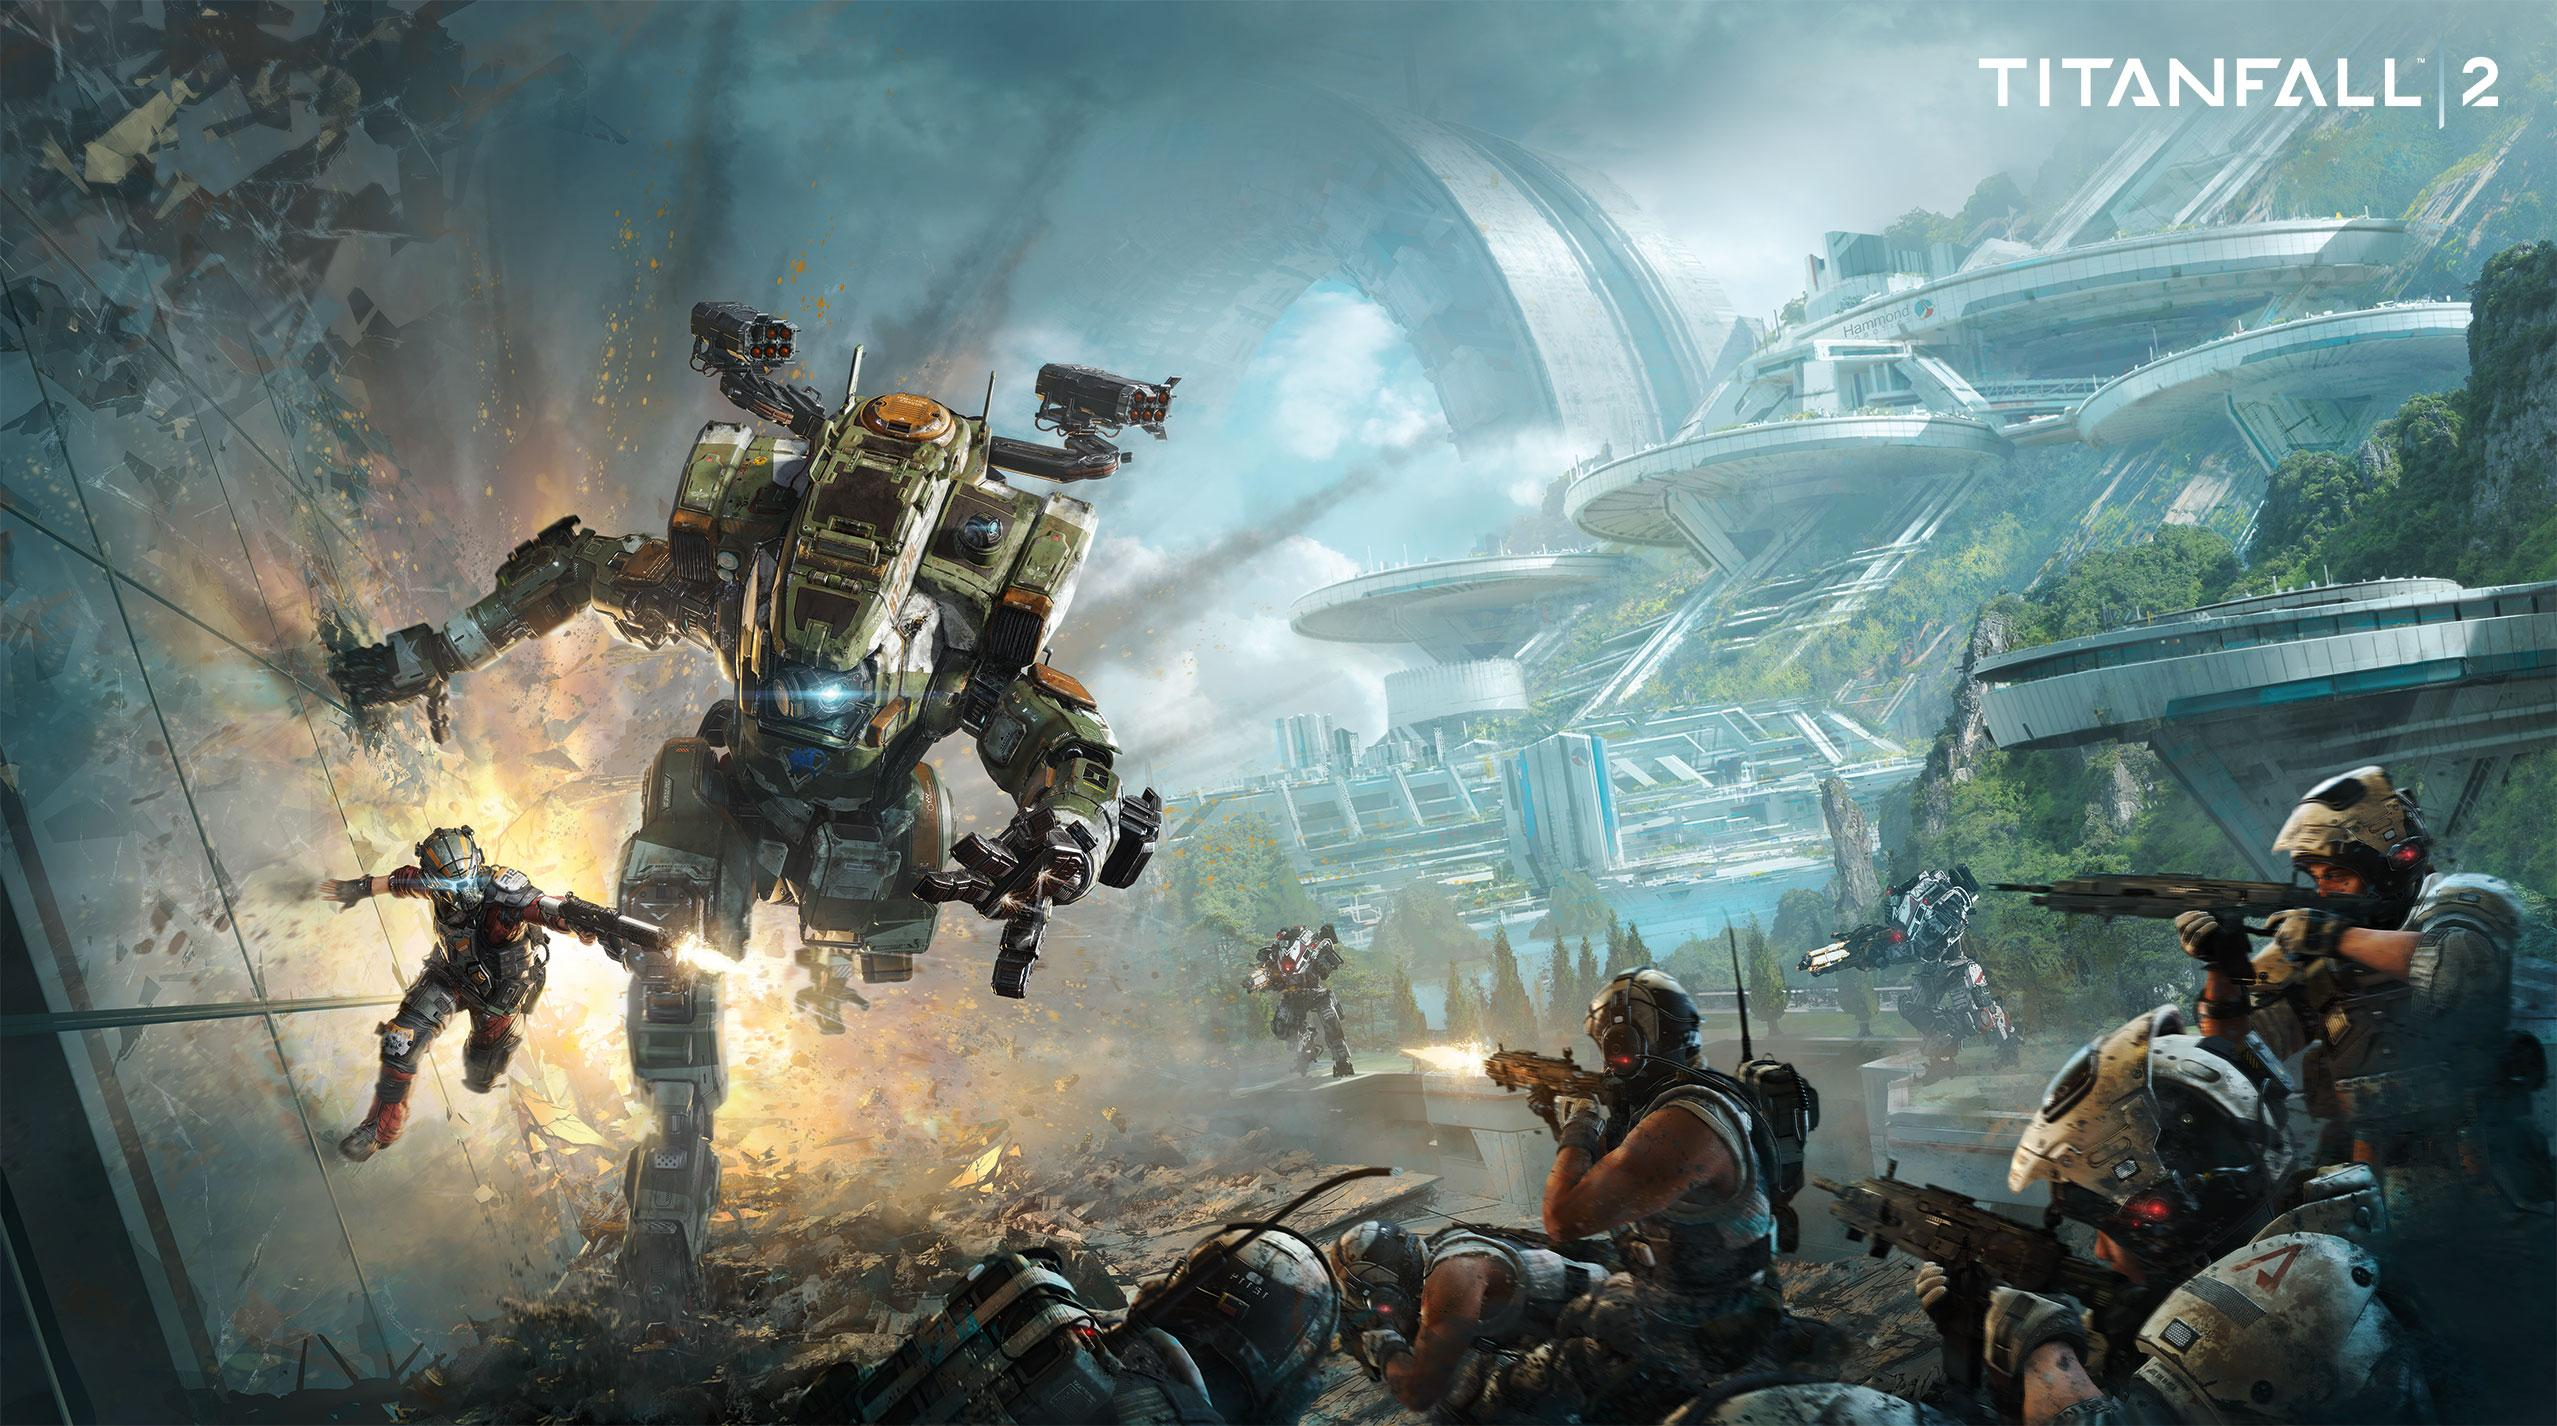 What is Titanfall 2?